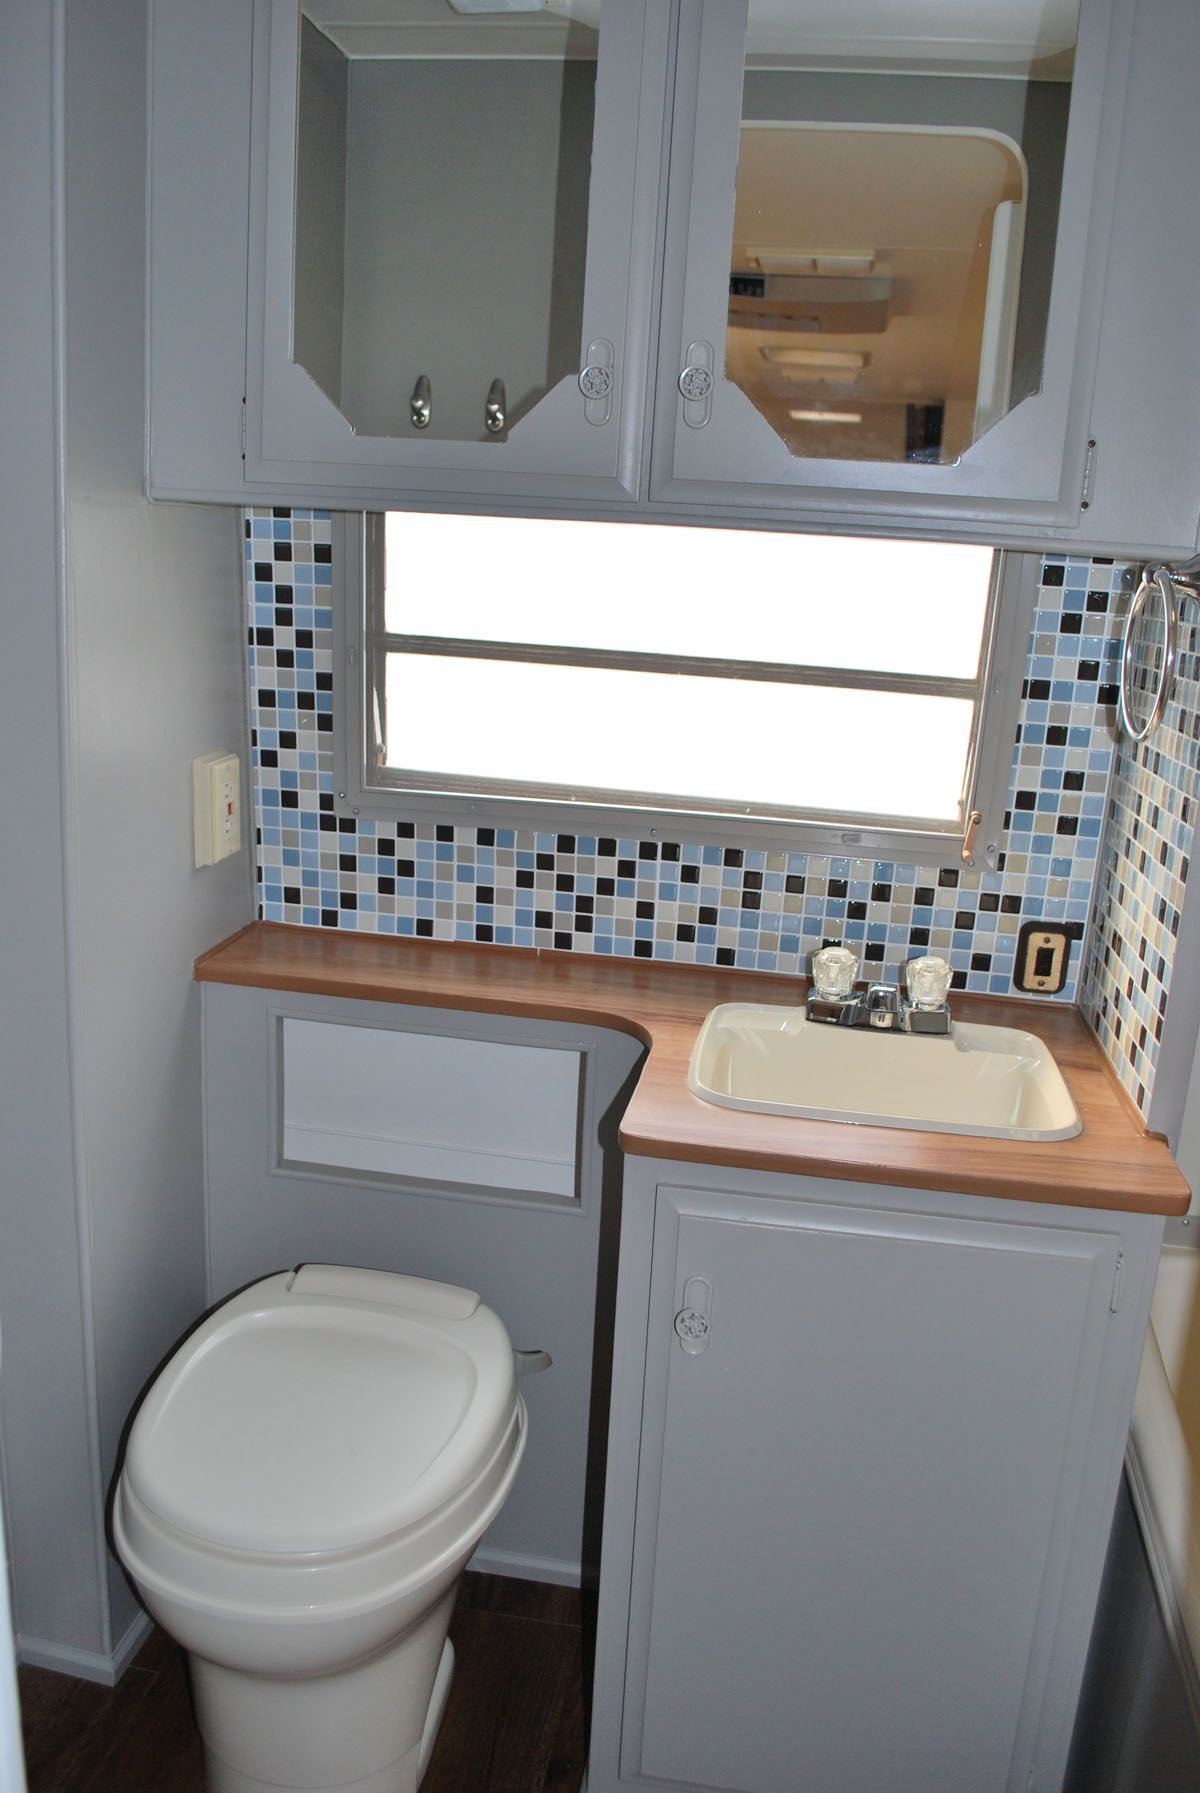 Remodeled Bathroom 1985 Fleetwood Prowler All The Walls